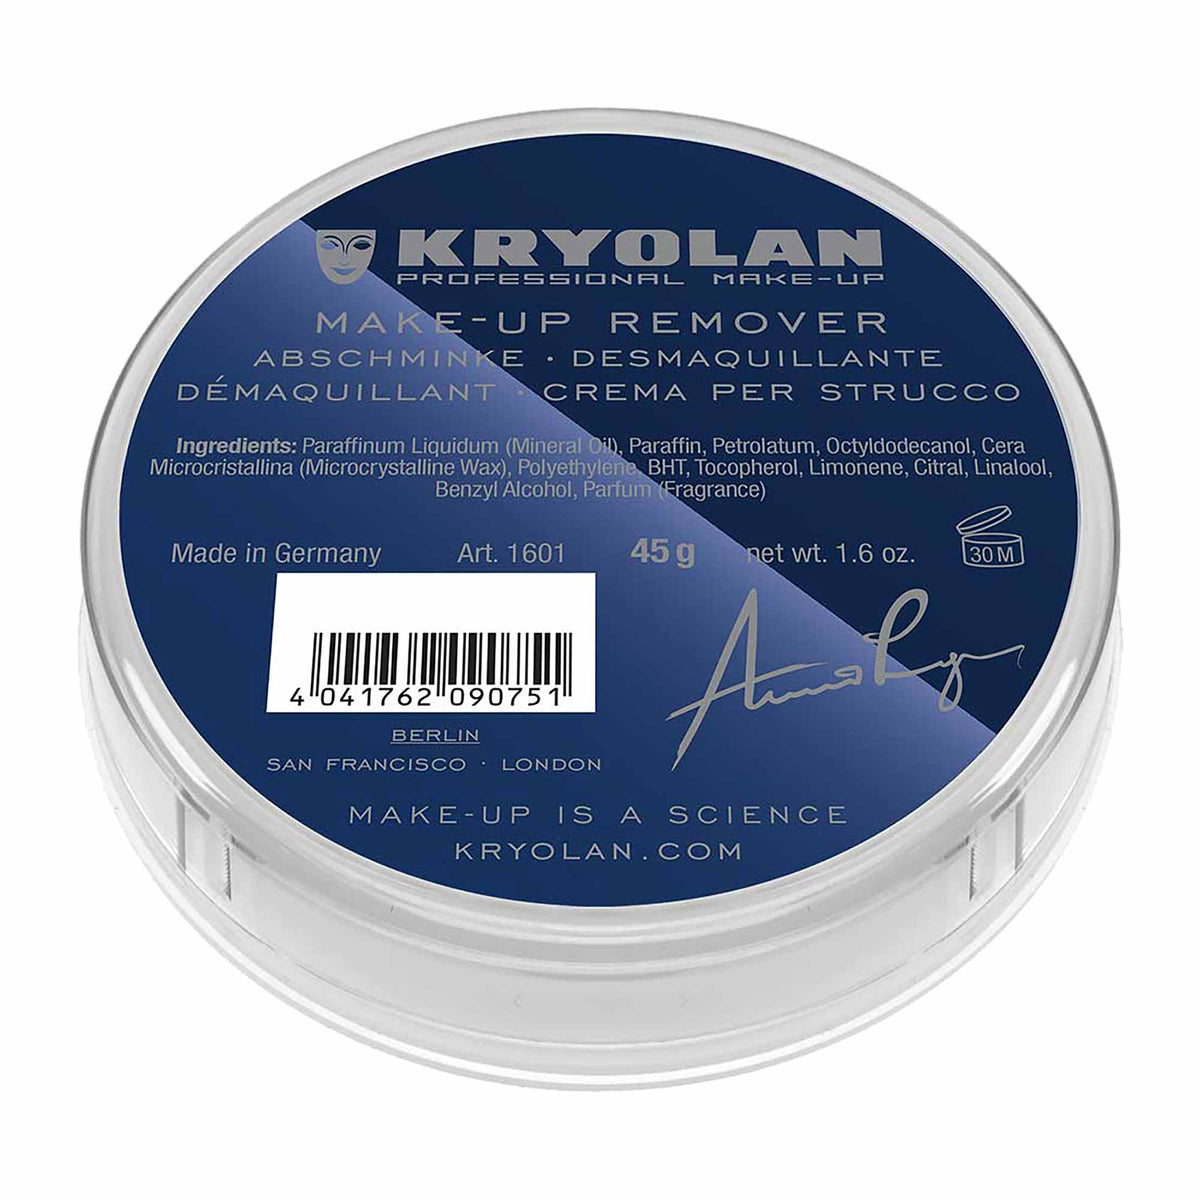 Kryolan Abschminke - Makeup Removing Cream